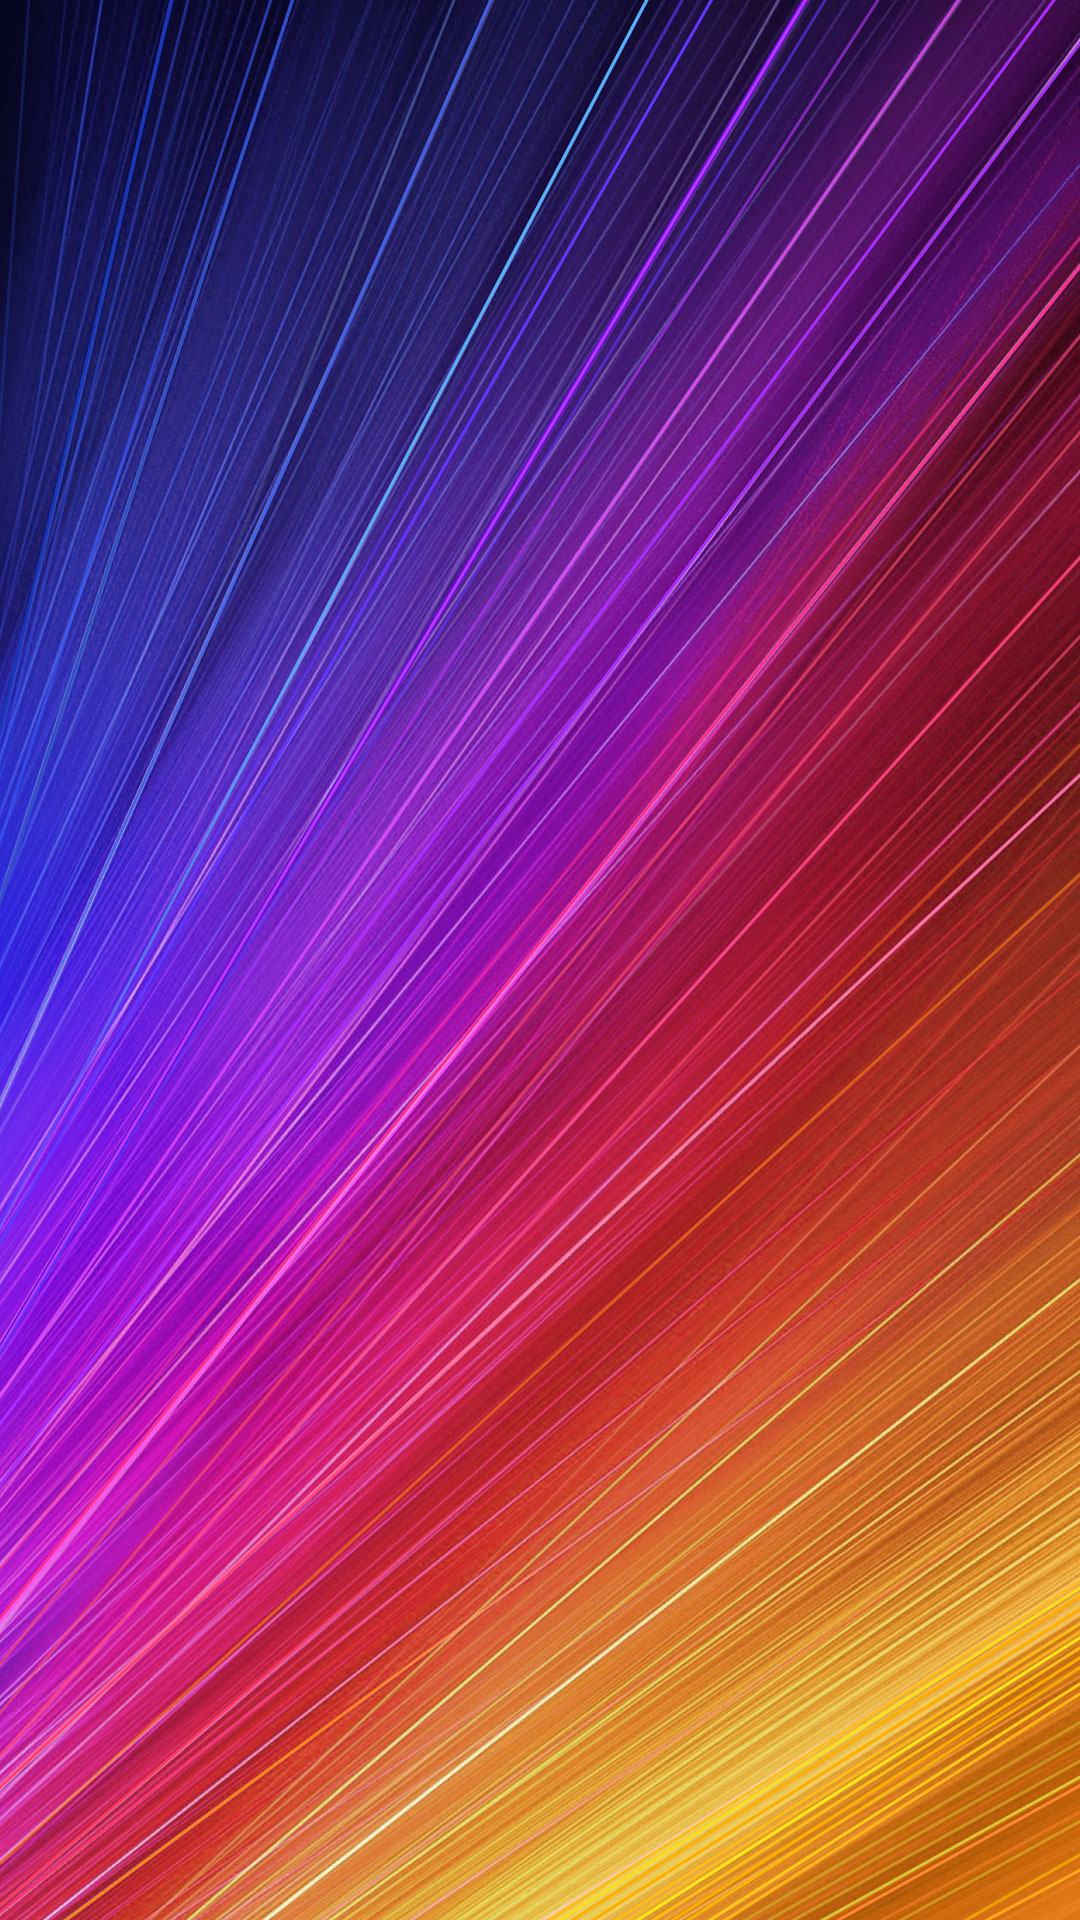 Htc One 3d Wallpaper Download All Of The Xiaomi Mi 5s Stock Wallpapers Here